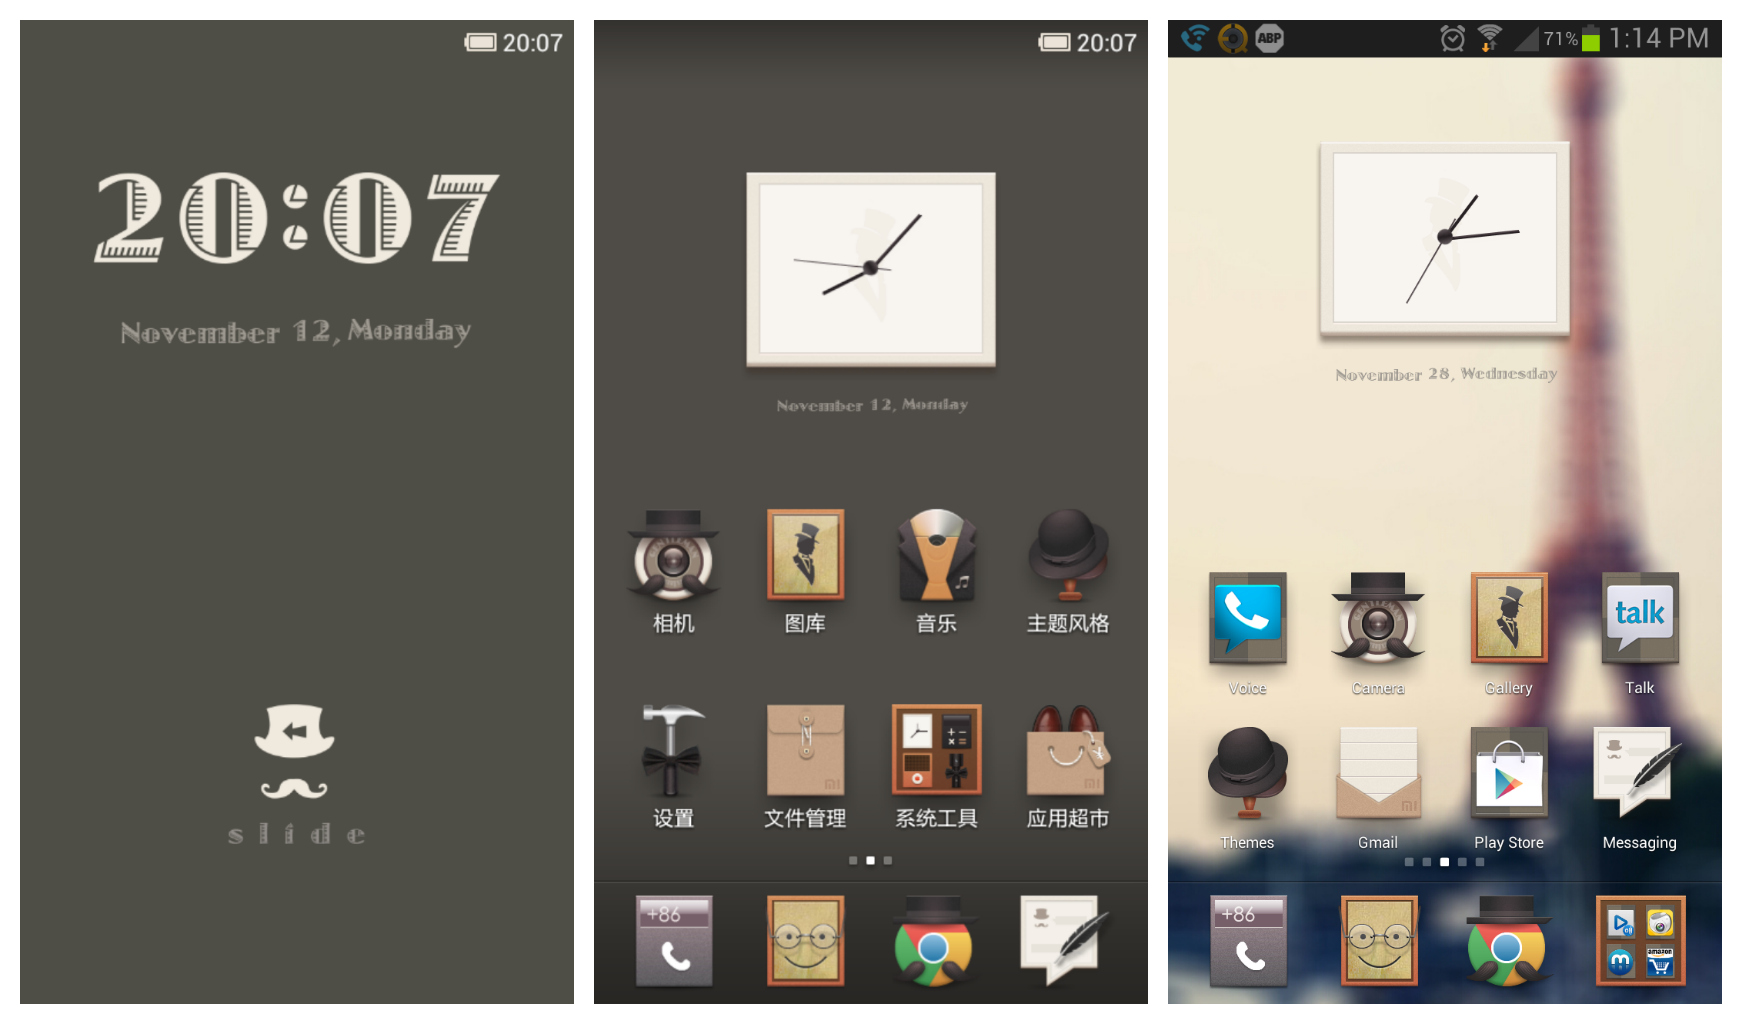 Give your phone a distinguished look with the Gentlemen's theme